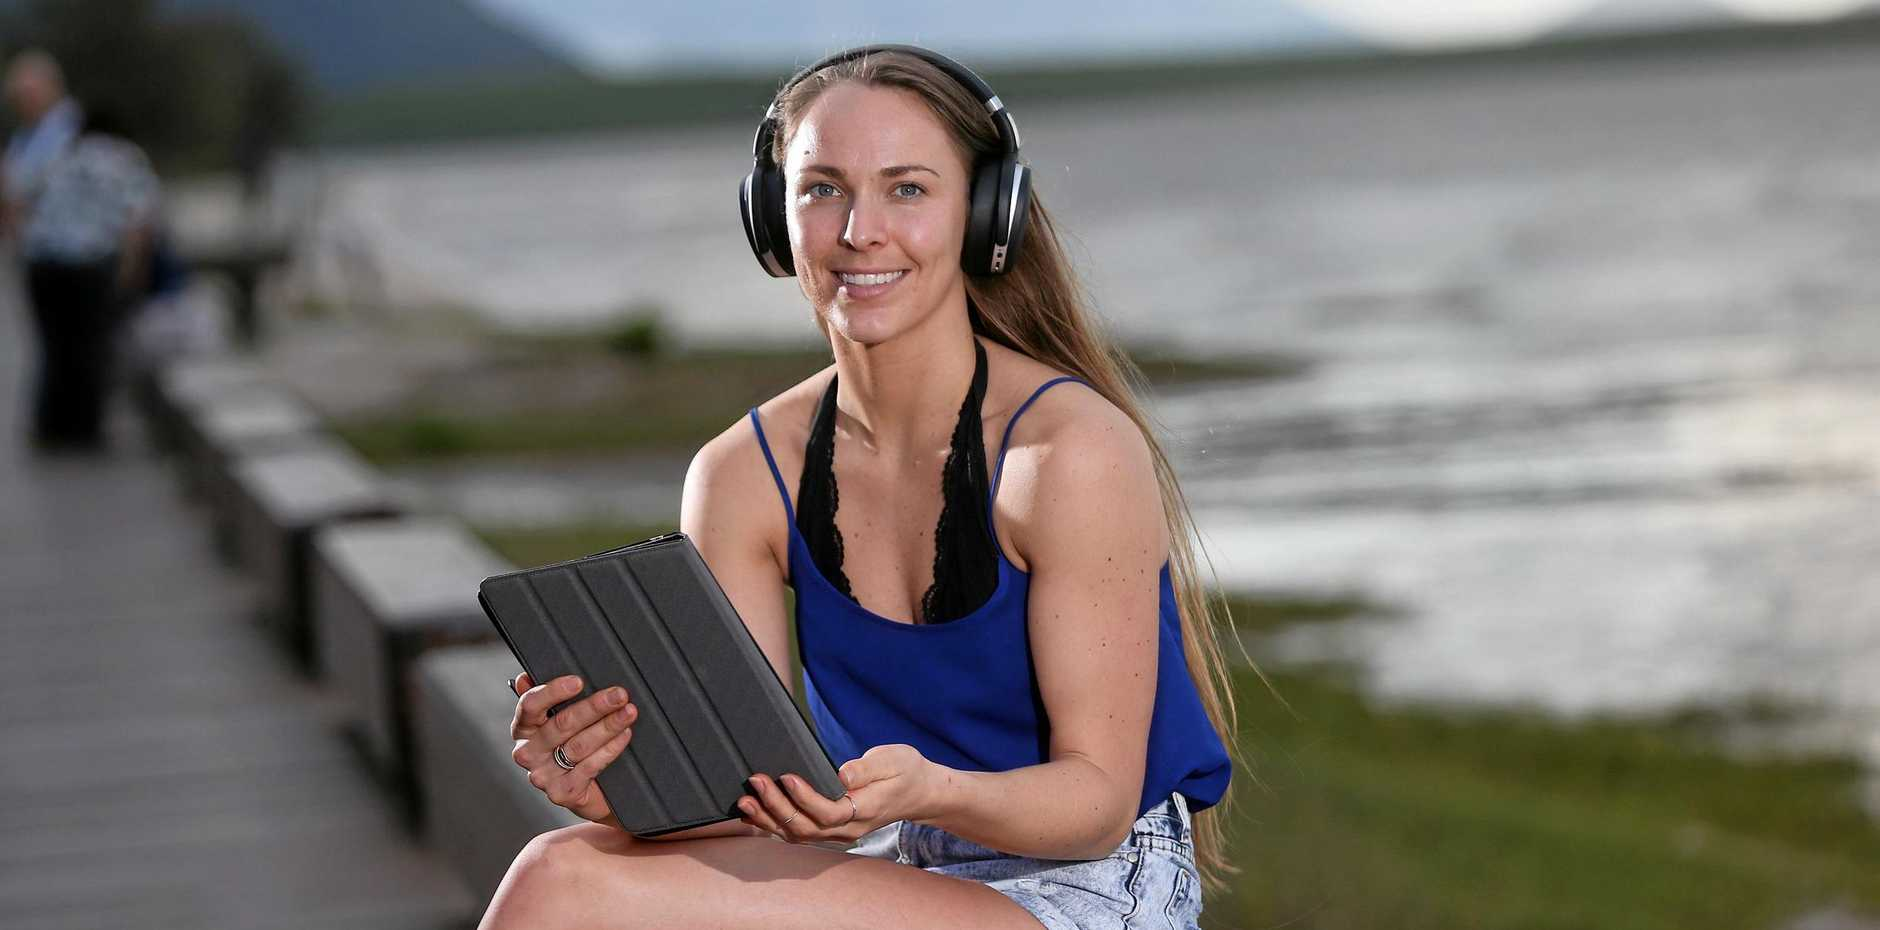 SOUND OF SILENCE: Alexandra Kwakernaak tries out the Sennheiser wireless noise cancelling headphones that new subscribers will receive when they sign a 12 month subscription with the Coffs Coast Advocate.